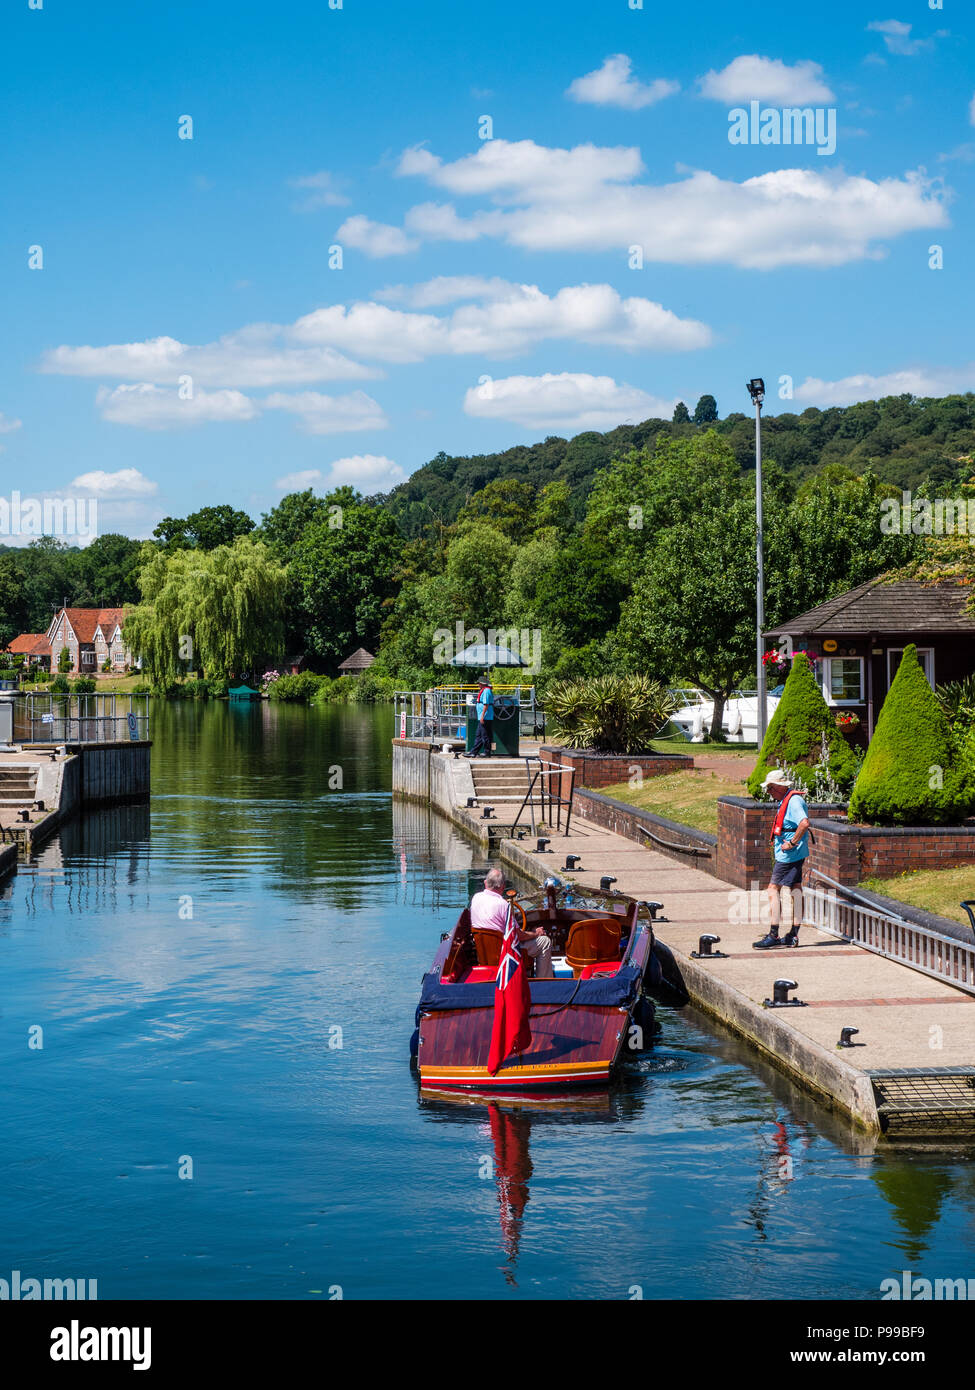 Launch Using, Hambleden Lock and Weir, River Thames, Berkshire, England, UK, GB. Stock Photo